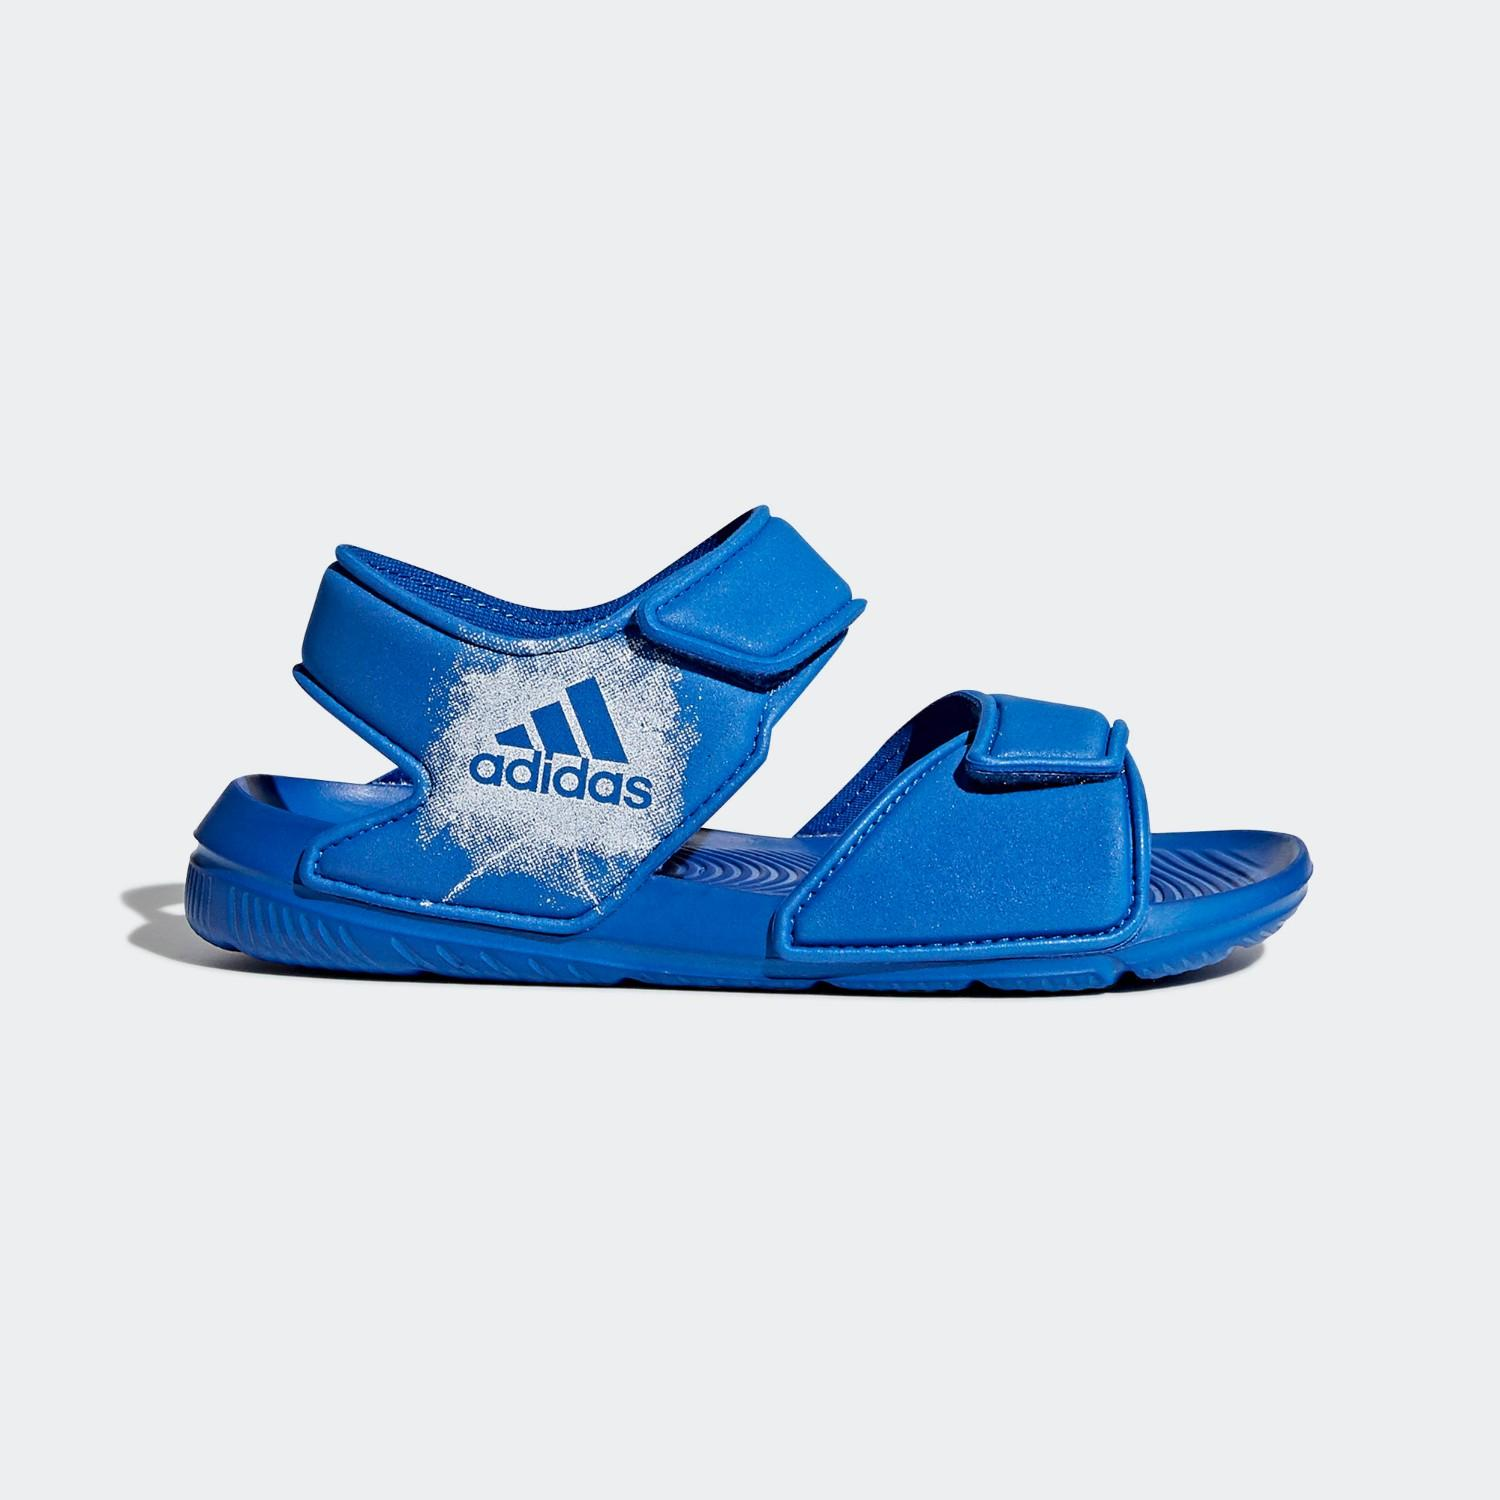 Adidas Altaswim Boys Sandals Ba9289 By Lazada Retail Adidas Official Store.